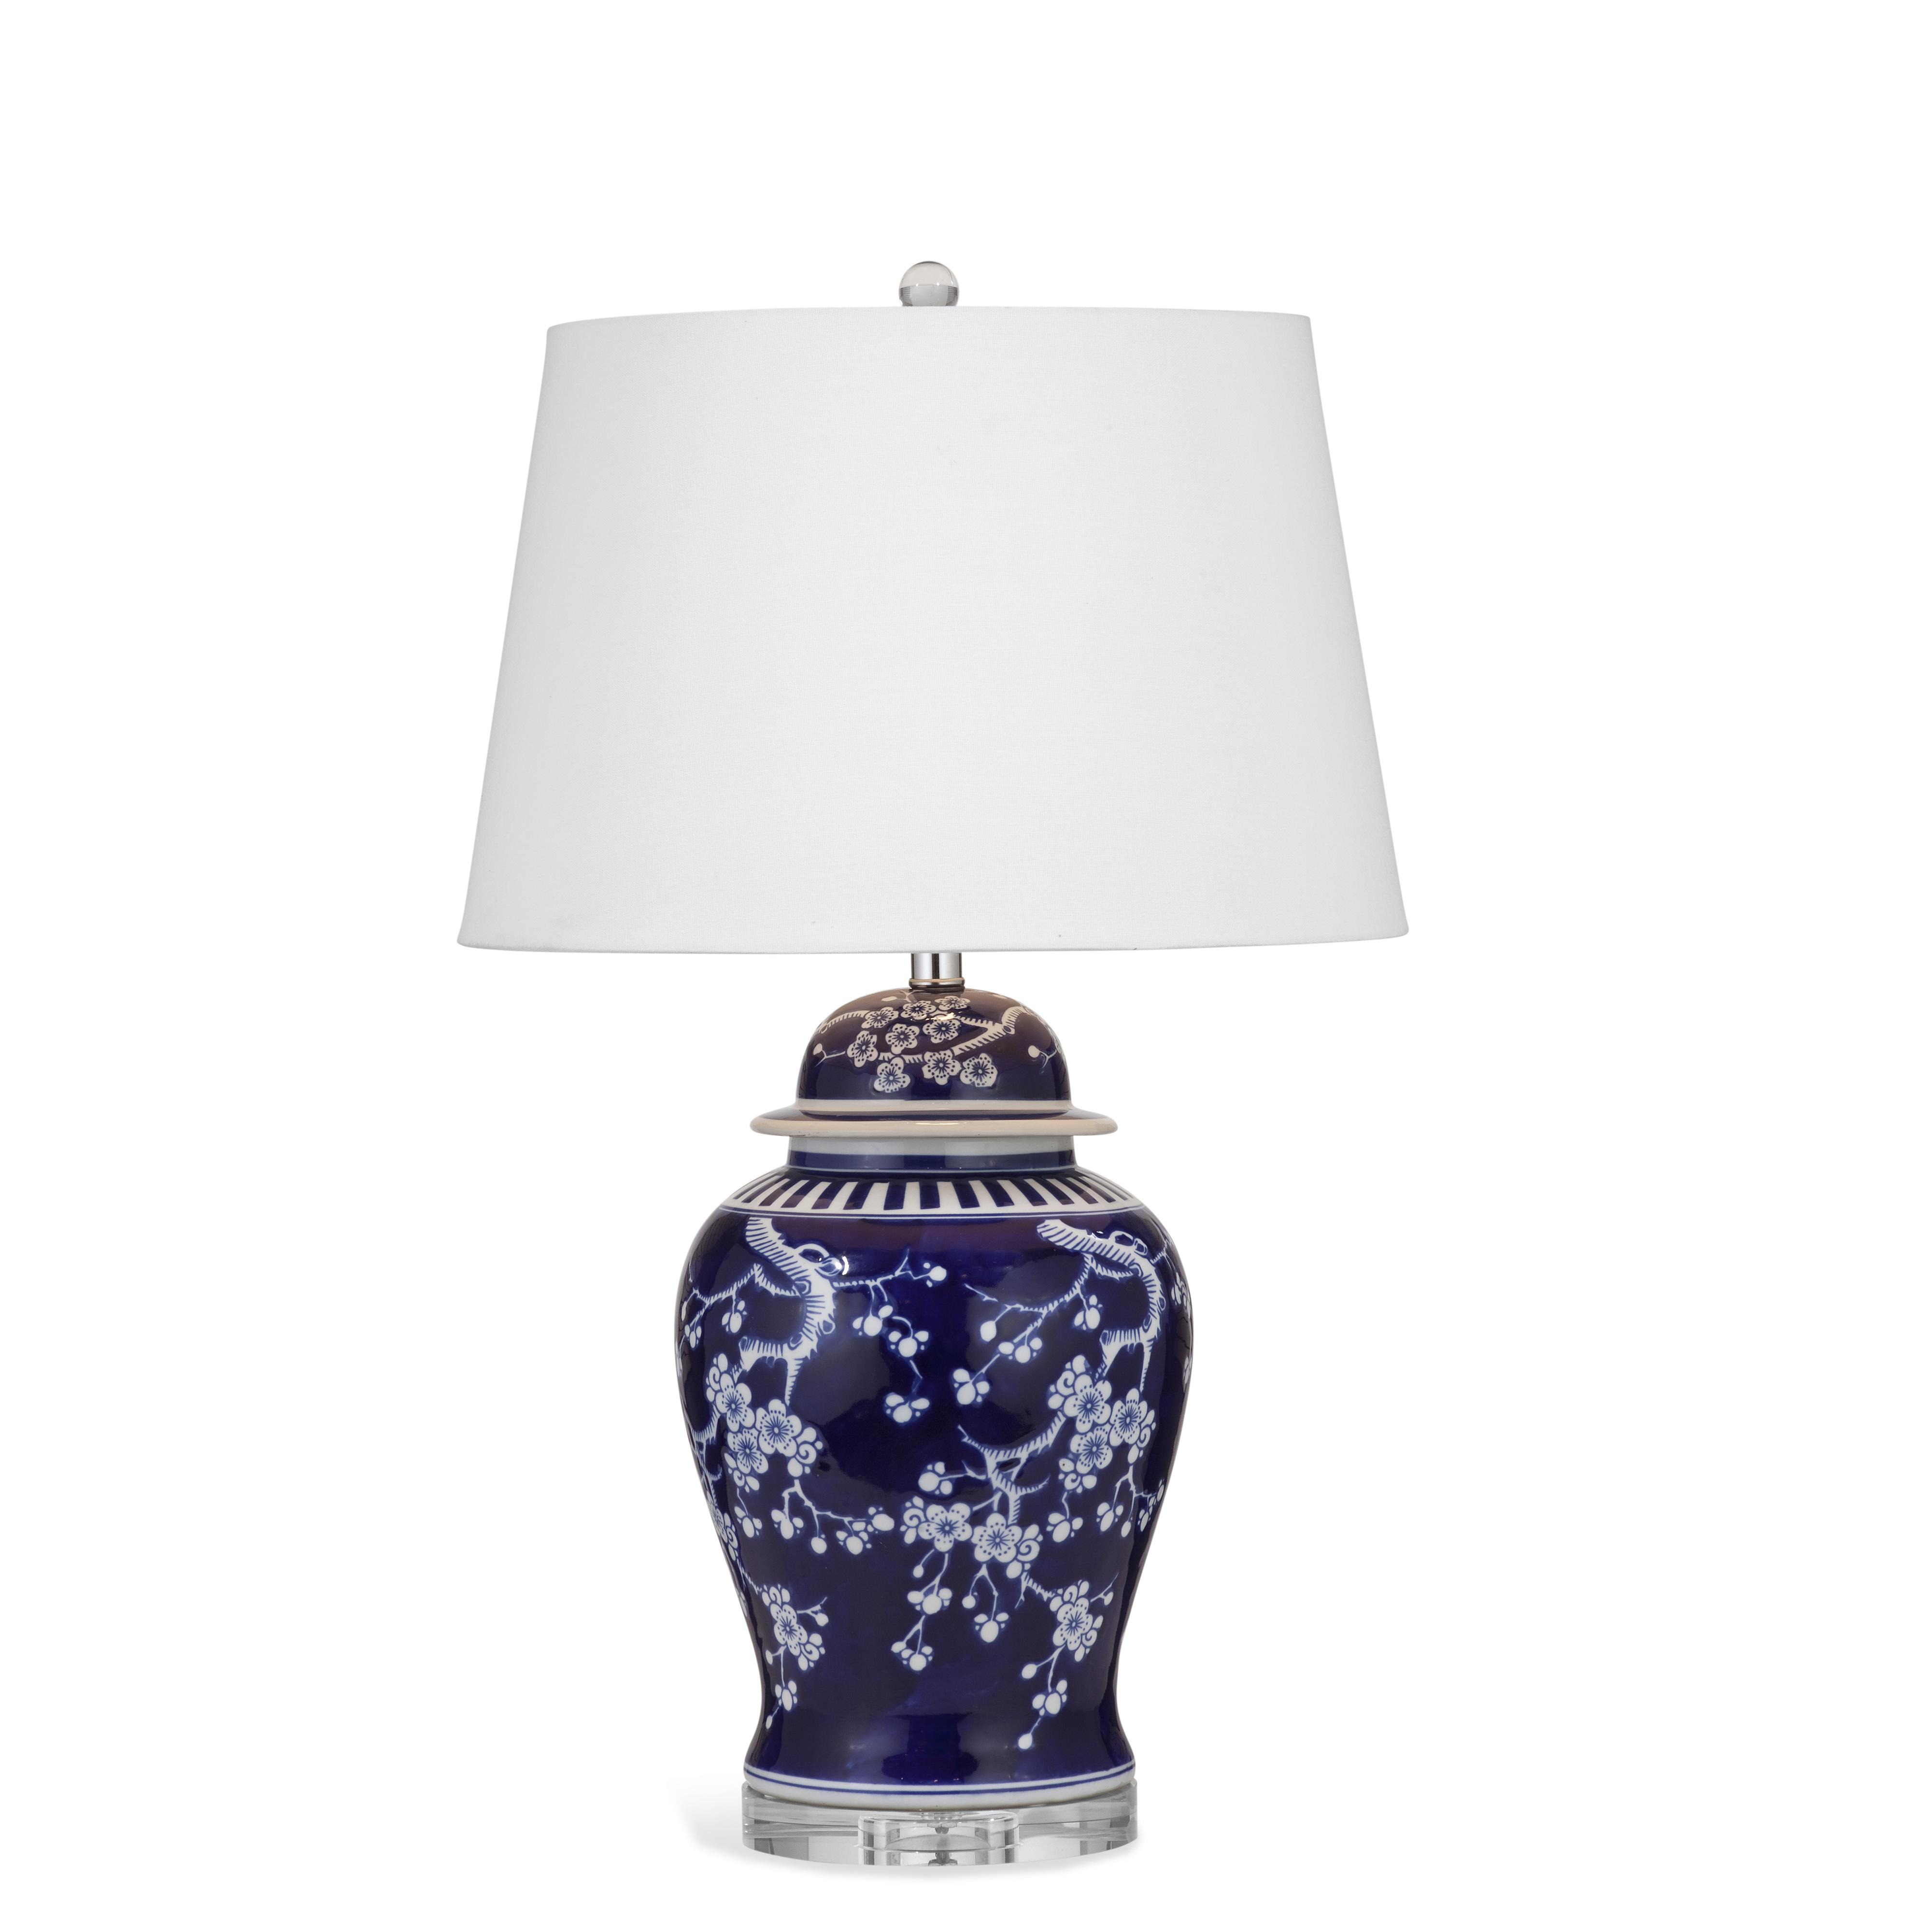 Old World Brohman Table Lamp by Bassett Mirror at Alison Craig Home Furnishings